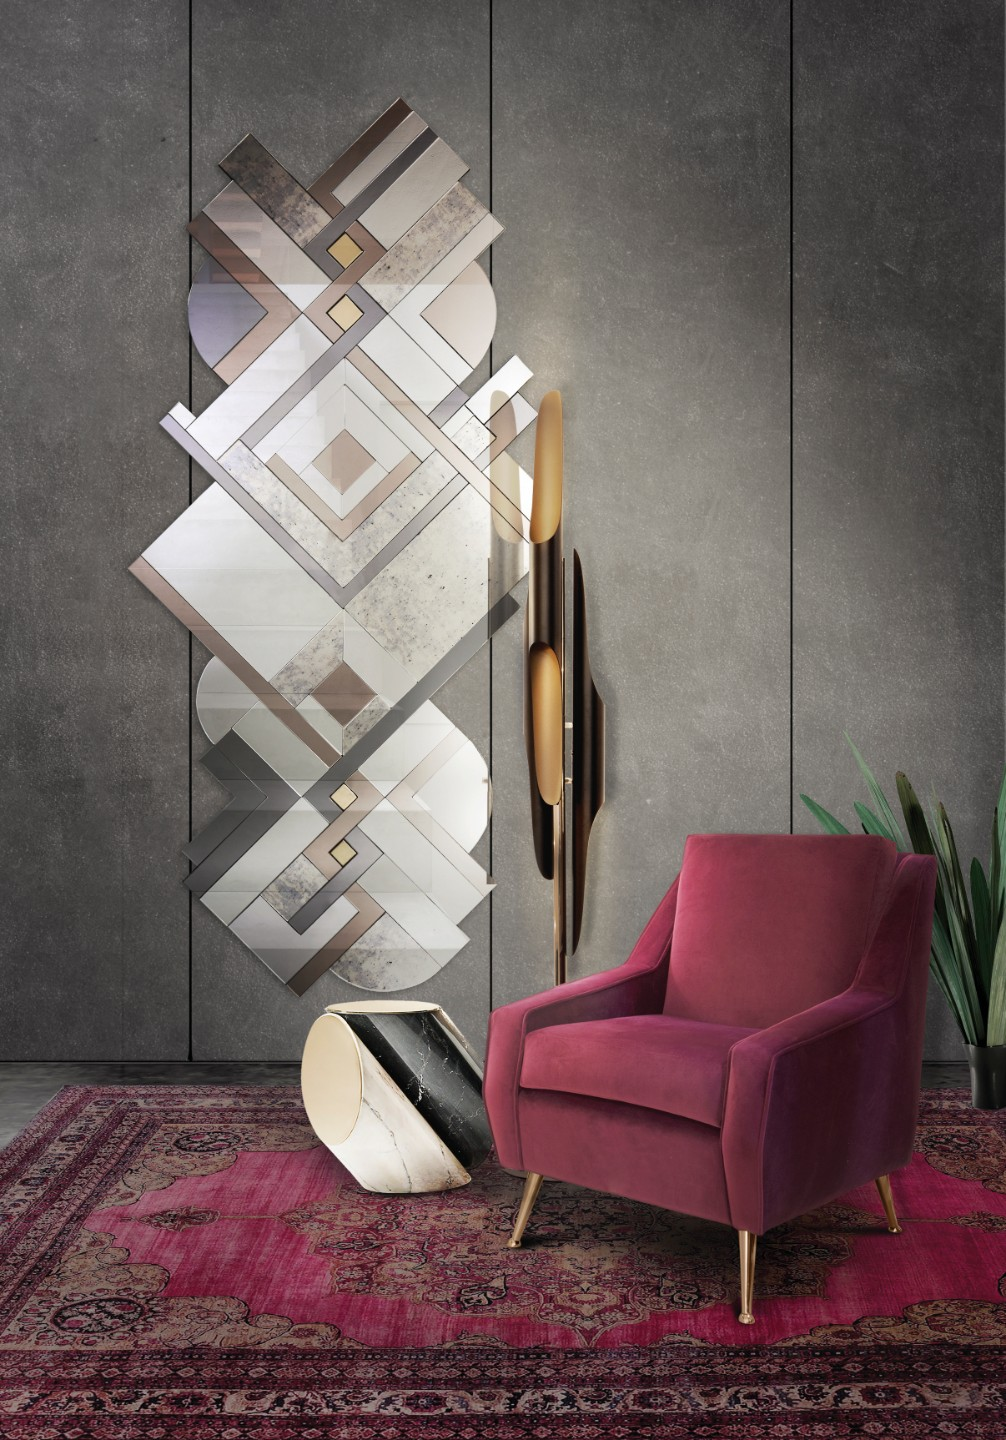 Let's Meet DelightFULL's Most Exclusive and Bespoke Mid-Century Lamps 8 mid-century lamps Let's Meet DelightFULL's Most Exclusive and Bespoke Mid-Century Lamps Lets Meet DelightFULLs Most Exclusive and Bespoke Mid Century Lamps 8